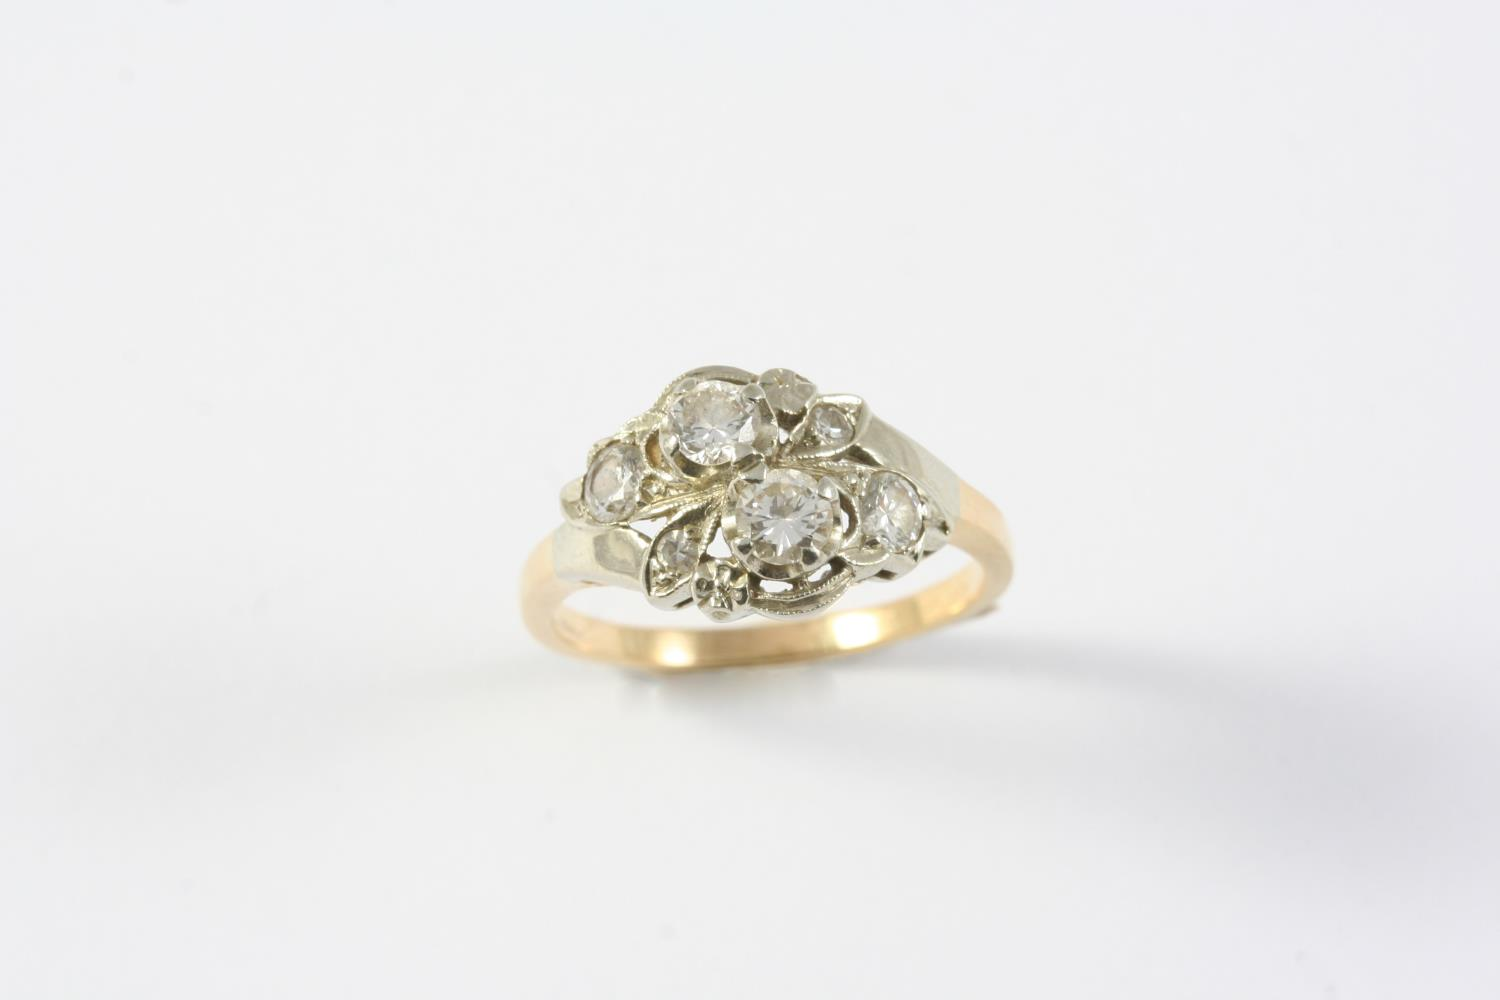 A DIAMOND RING mounted with four circular-cut diamonds and two smaller diamonds, in gold. Size O